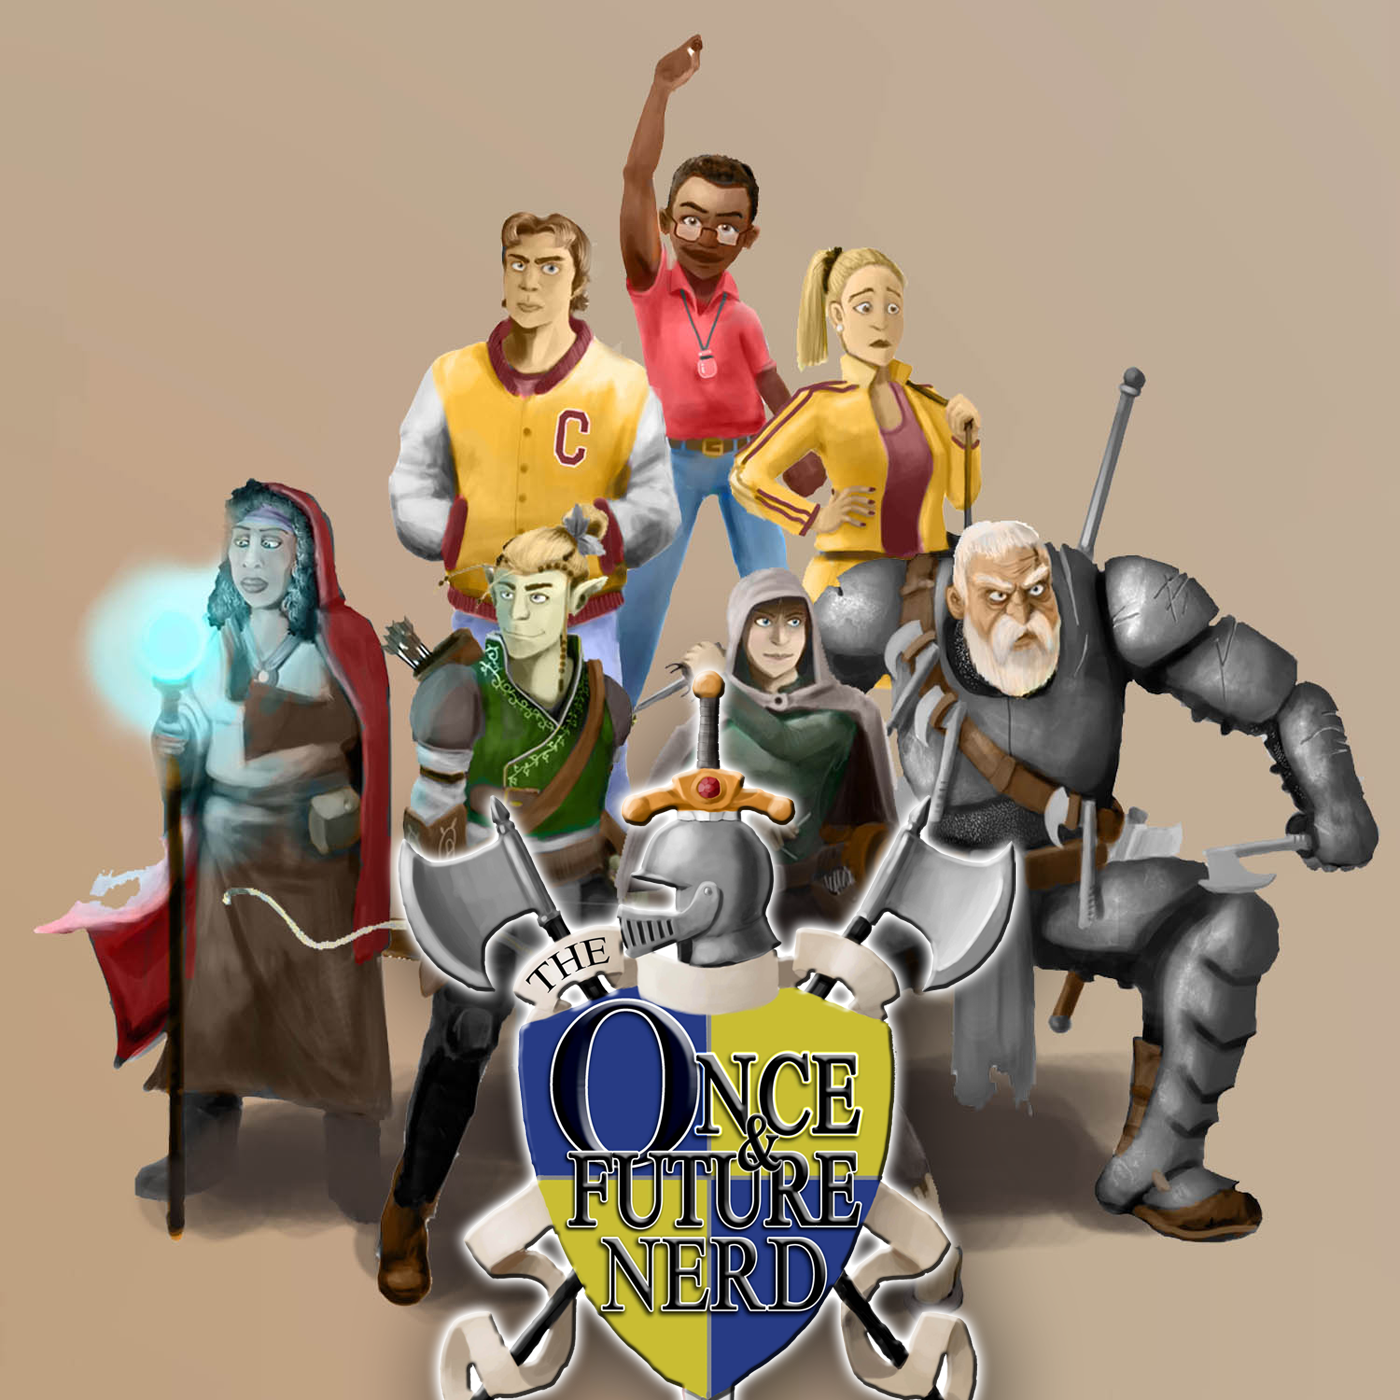 The Once And Future Nerd logo